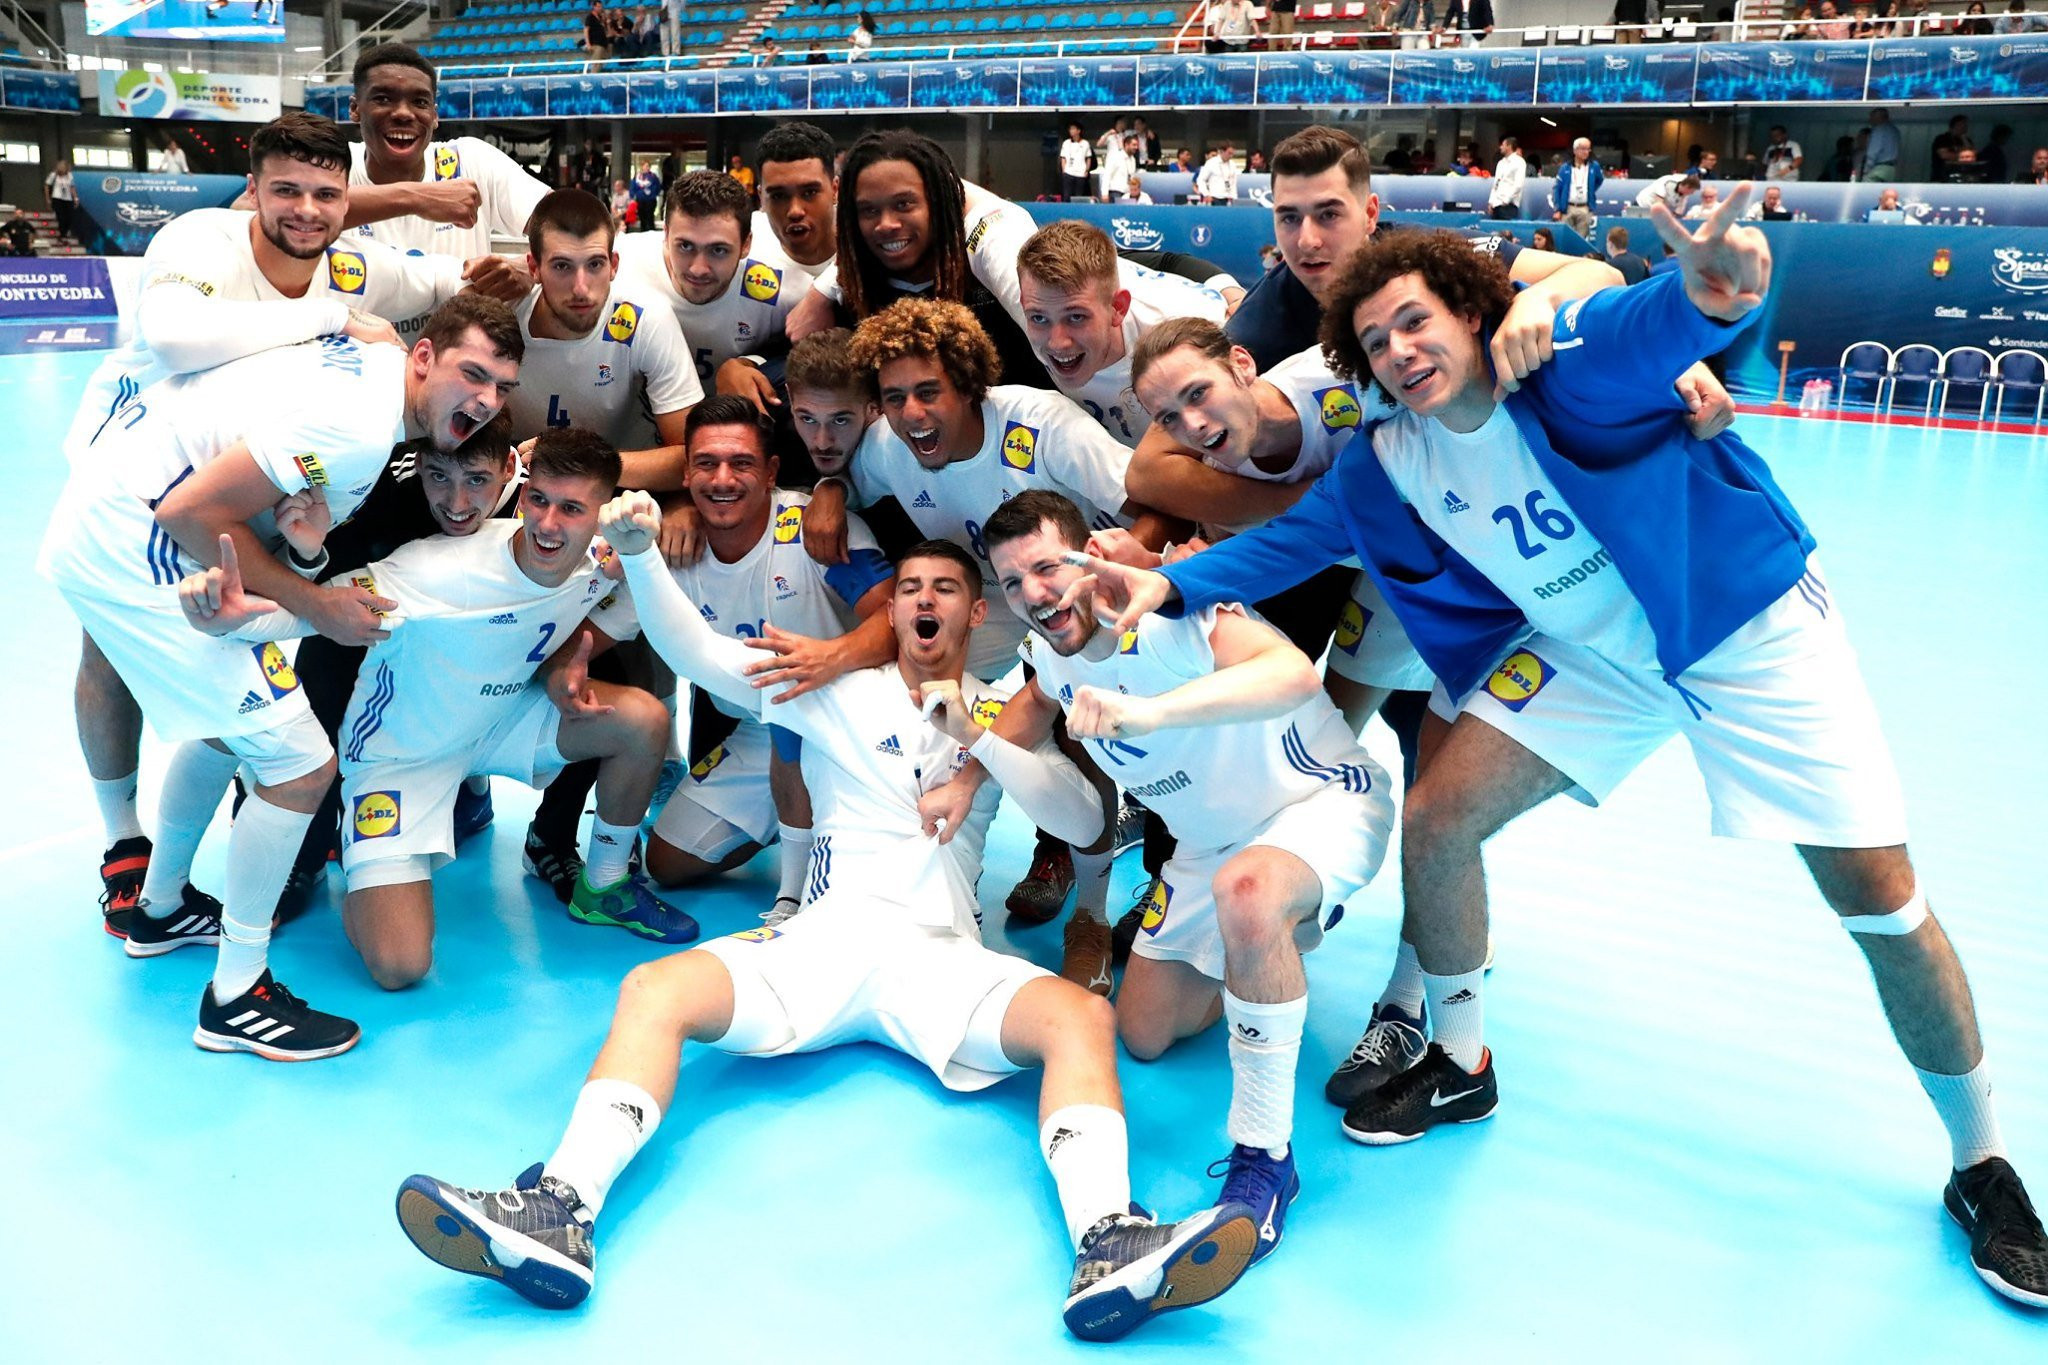 France to face Croatia in Men's Junior World Handball Championship final